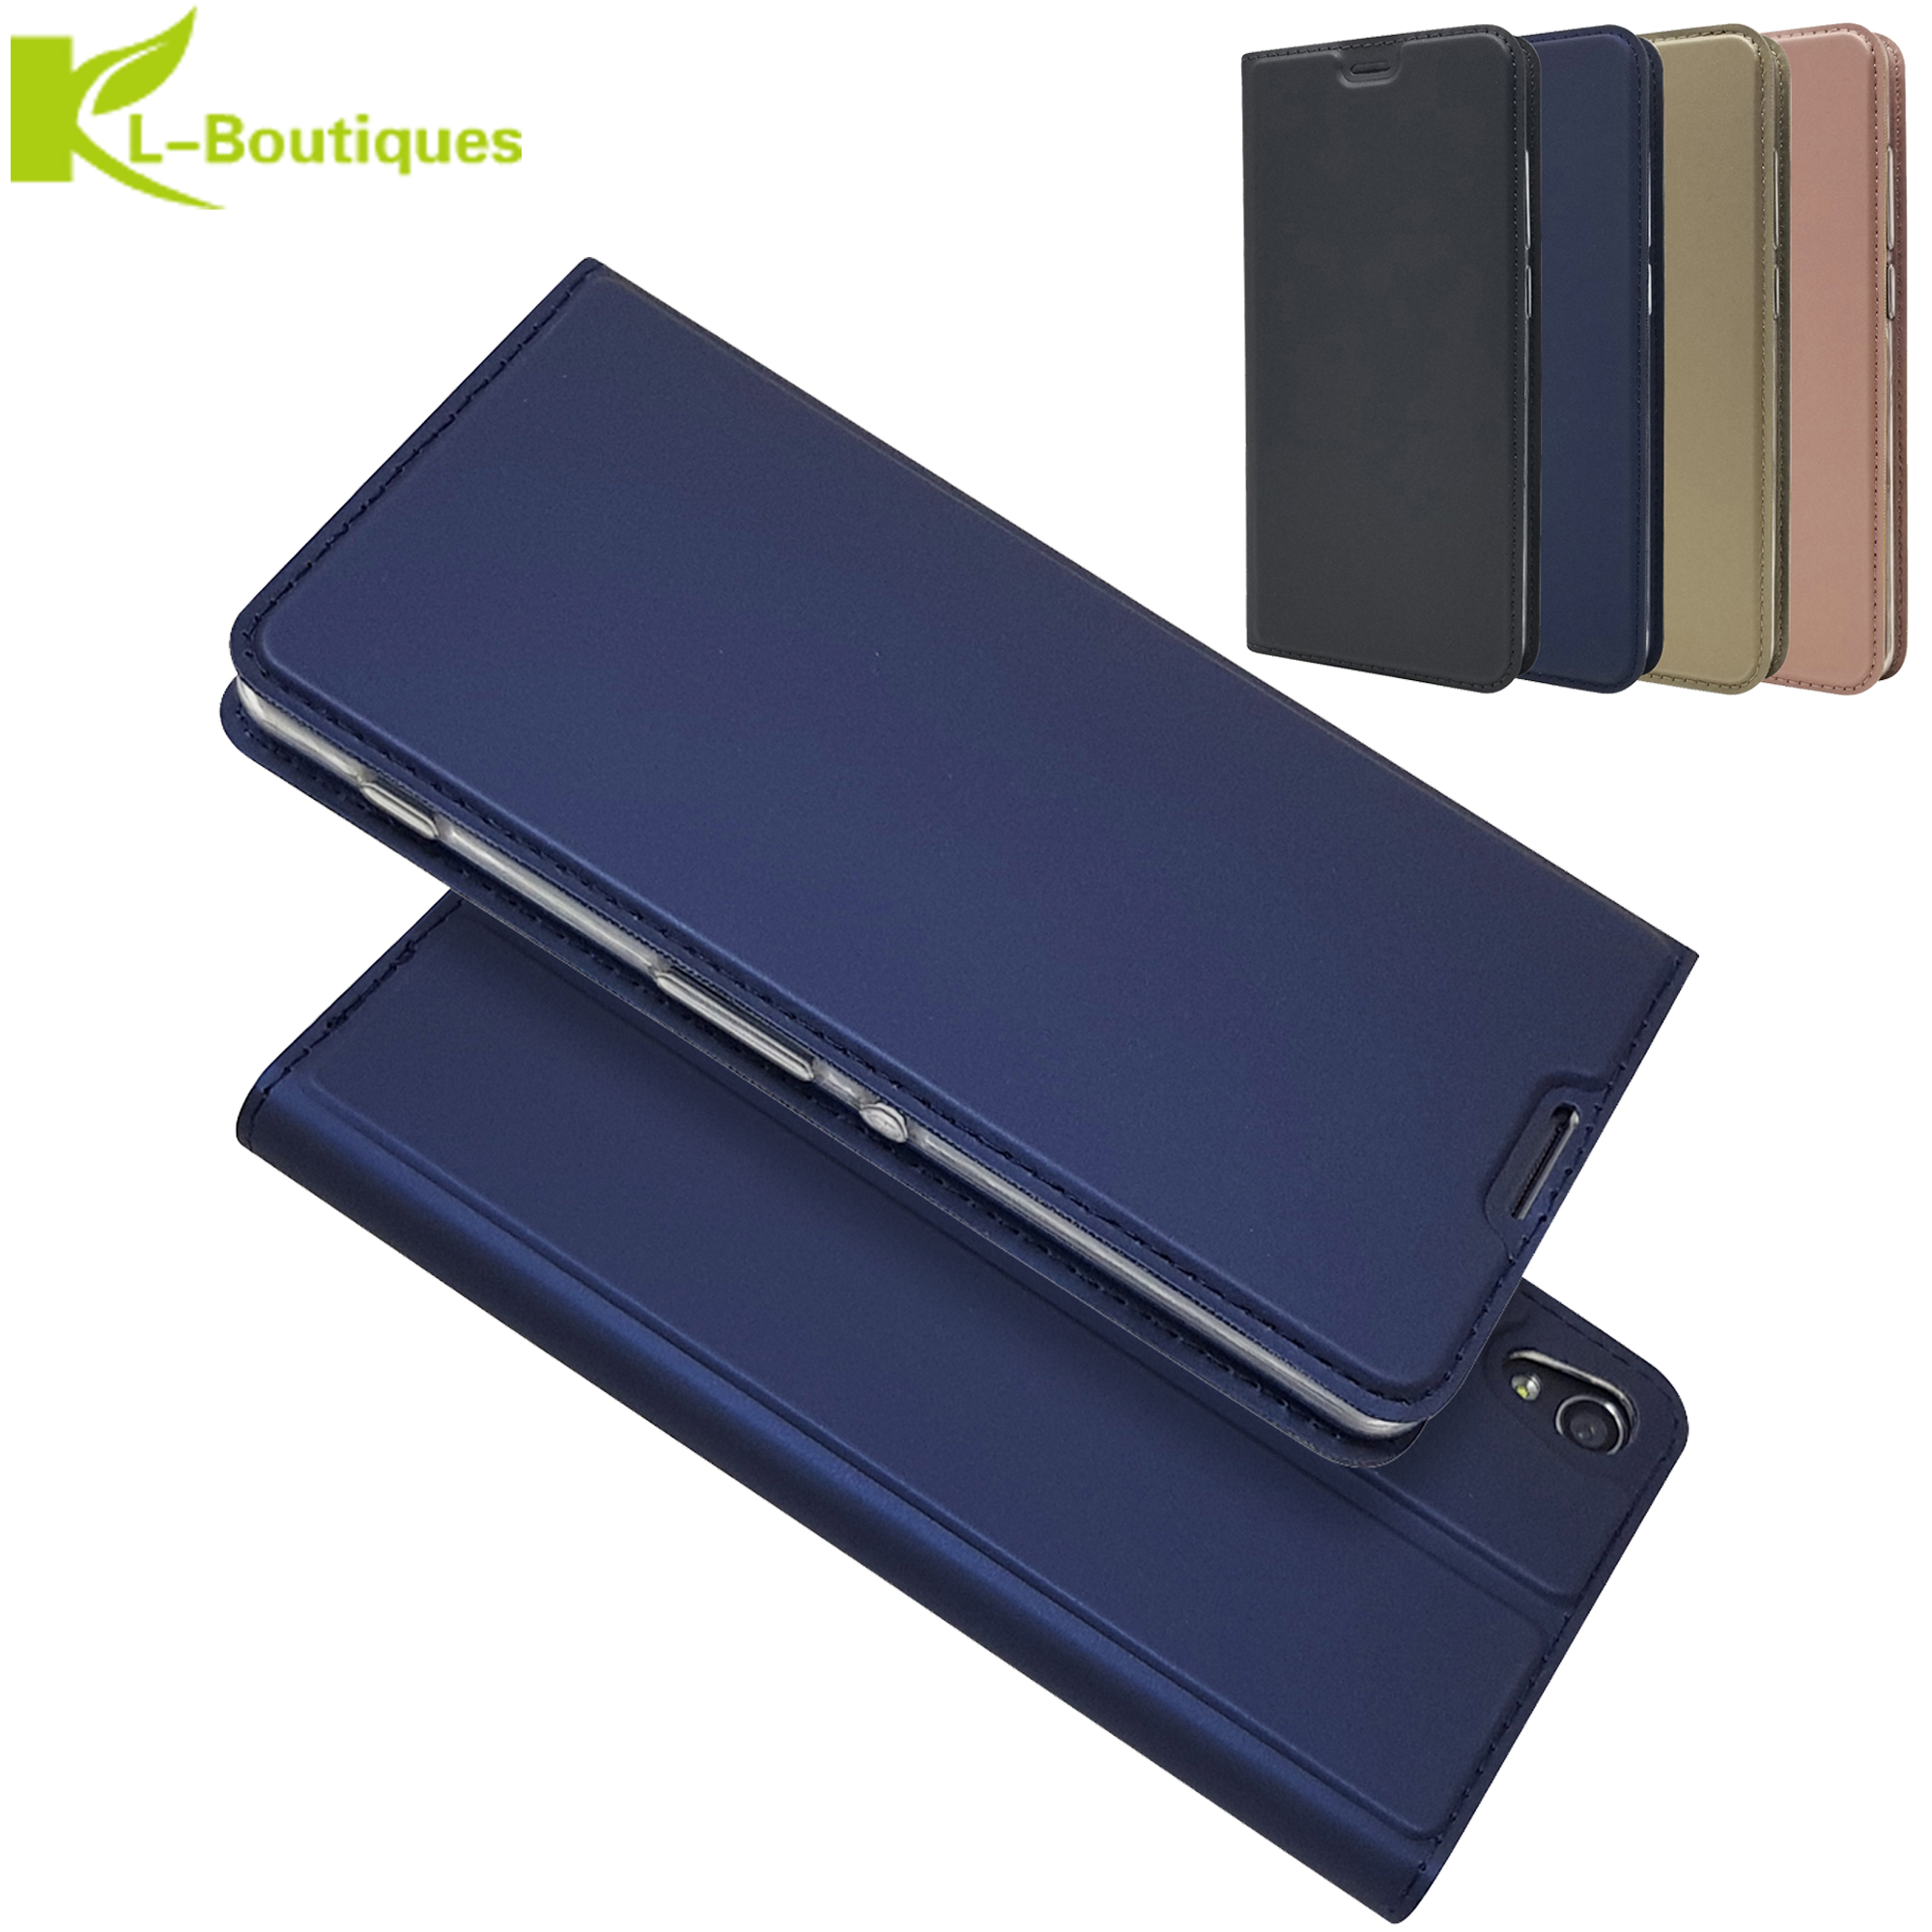 XA Magnetic PU Leather cases Etui For Sony Xperia XA X A Cover Flip capa For Sony XA xa F3111 F3112 F3113 F3115 F3116 Coque bags